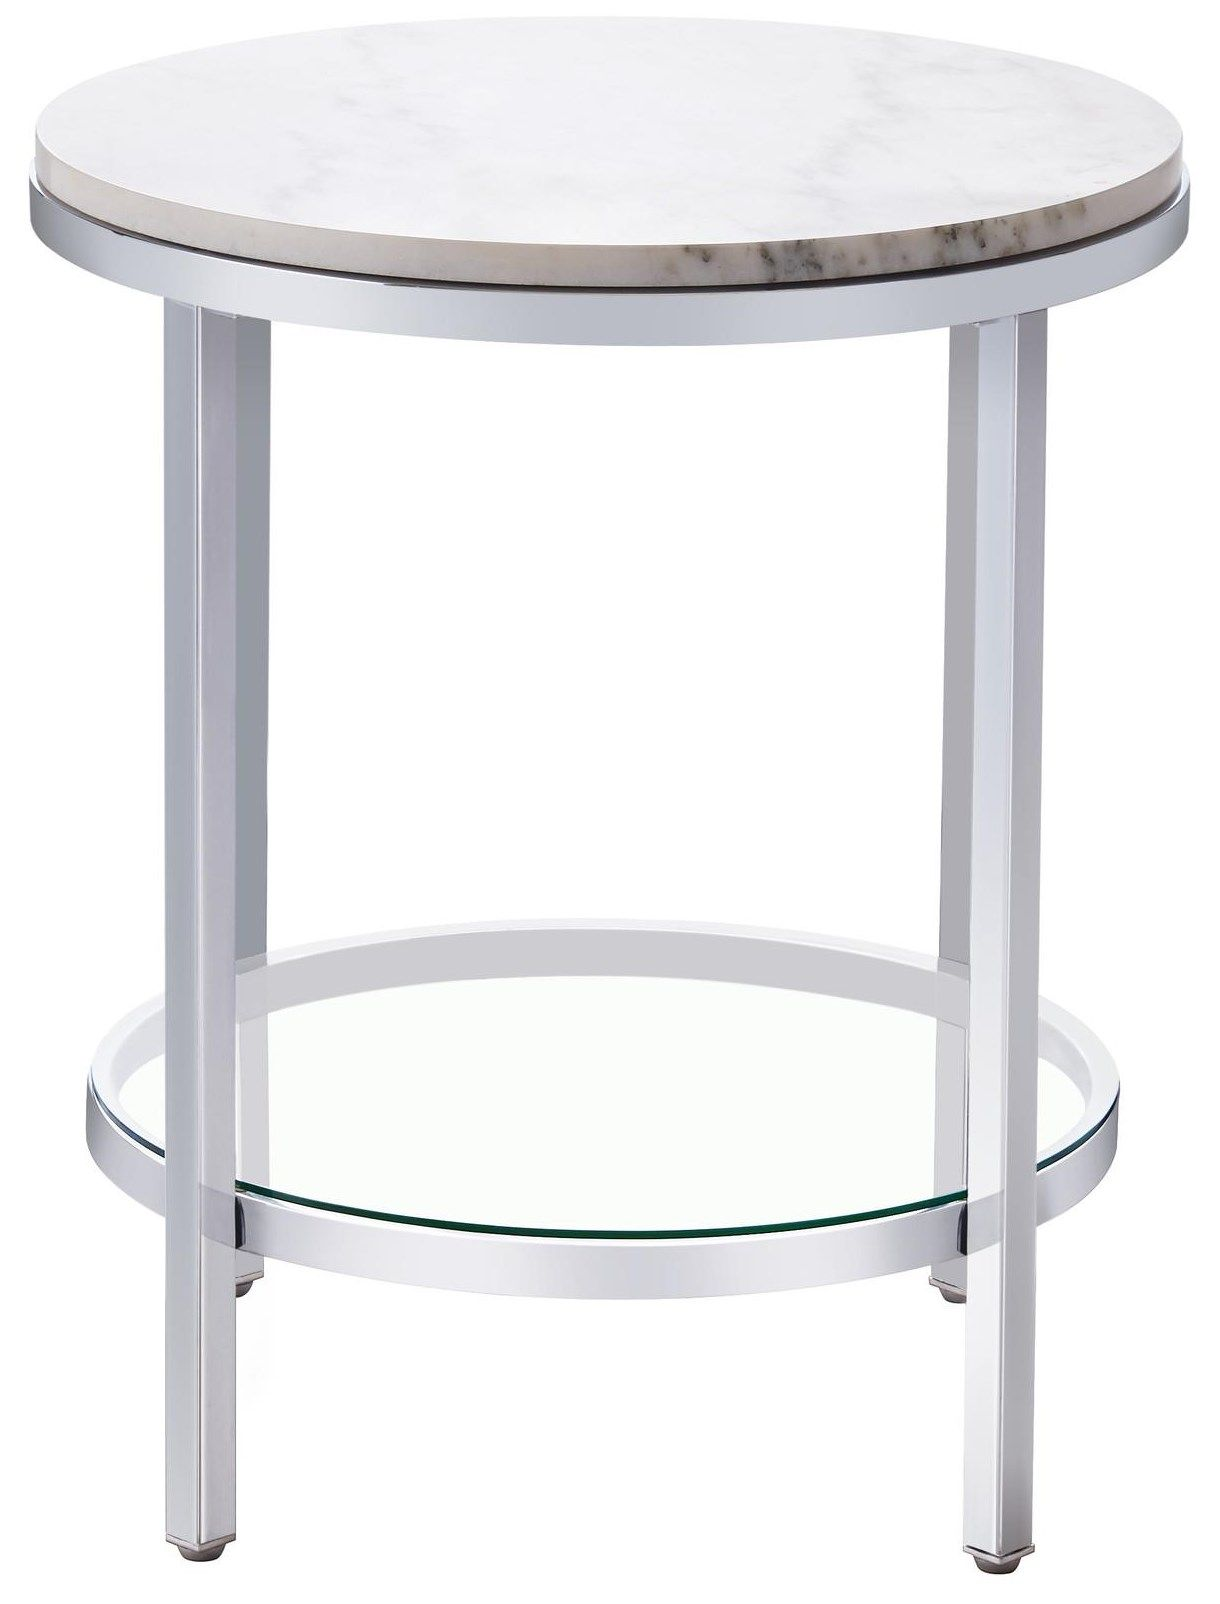 Amazonsmile Mango Steam Metro Glass Coffee Table Clear Top X2f Black Base Kitchen Amp Dining Coffee Table Round Glass Coffee Table Glass Coffee Table [ 1024 x 768 Pixel ]